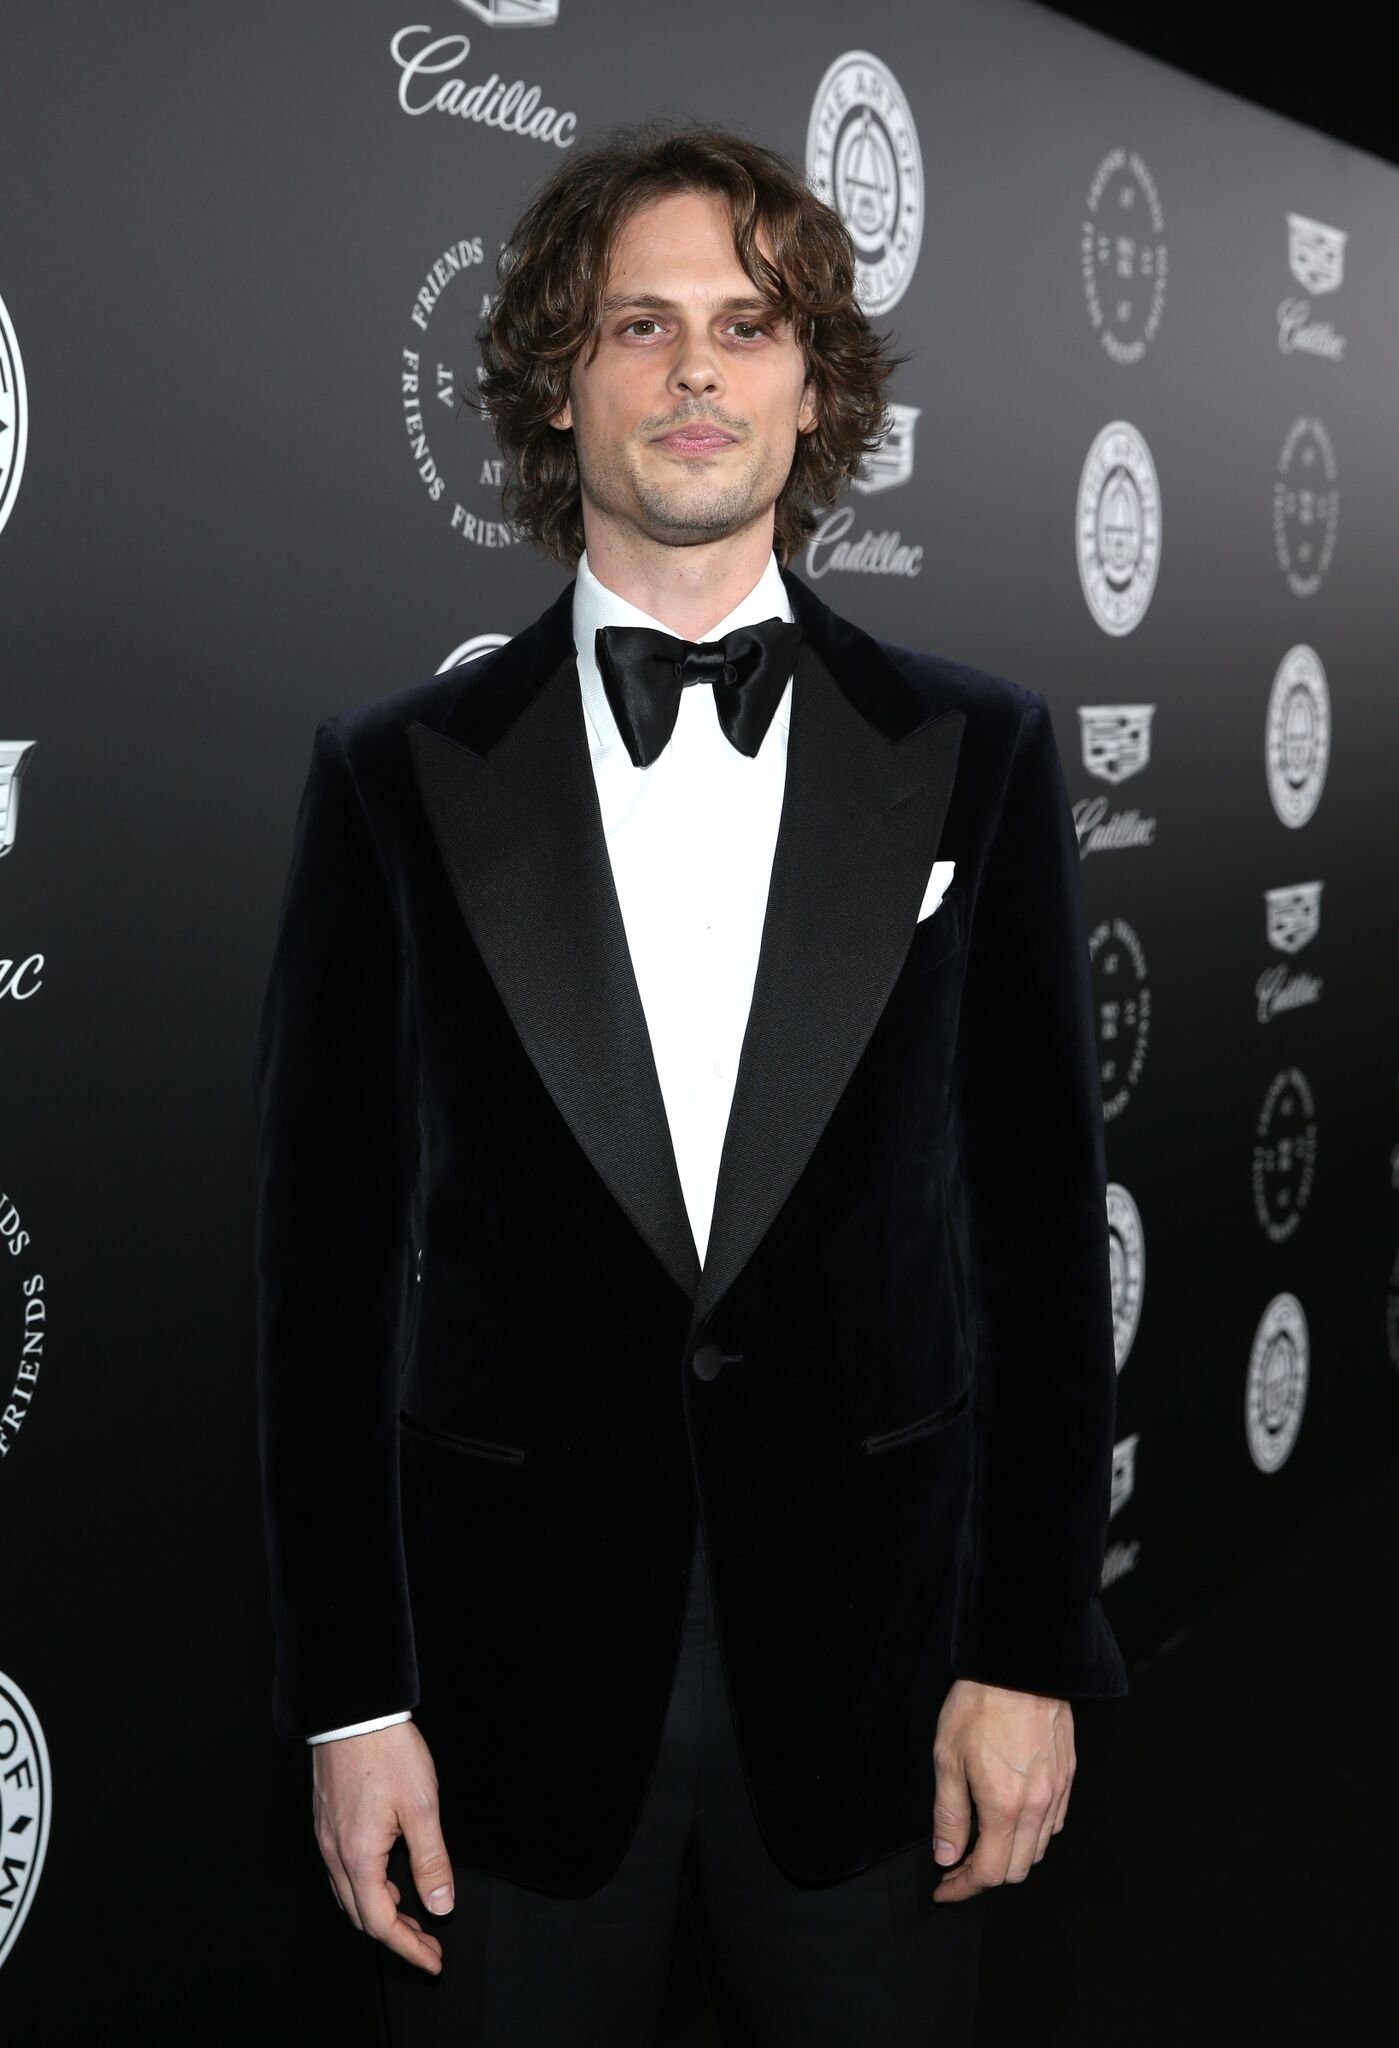 Matthew Gray Gubler attends The Art Of Elysium's 11th Annual Celebration with John Legend at Barker Hangar on January 6, 2018 in Santa Monica, California | Photo: Getty Images